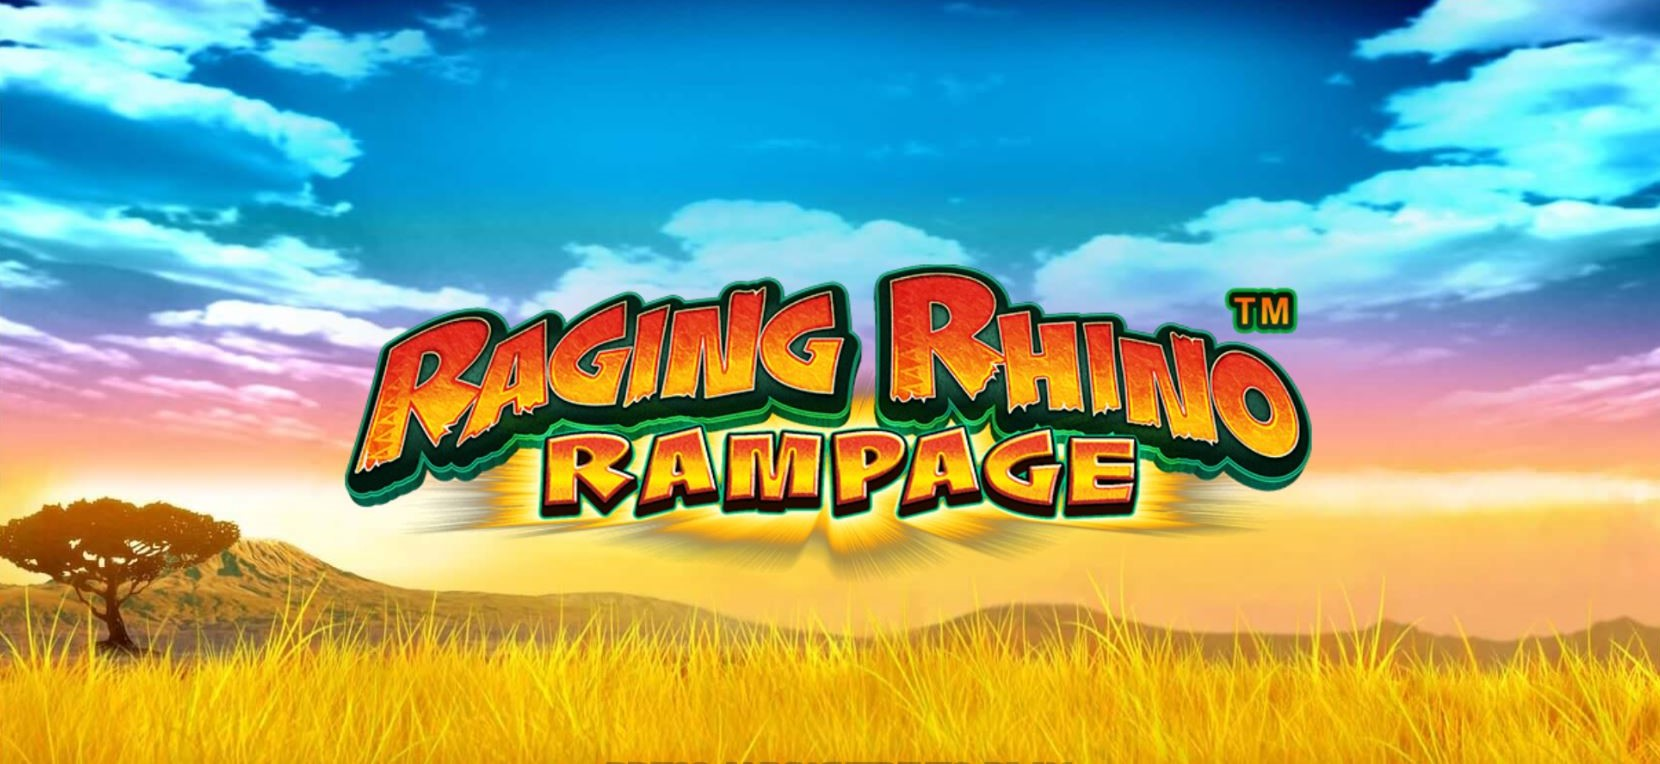 Raging Rhino Rampage slot loading screen by WMS